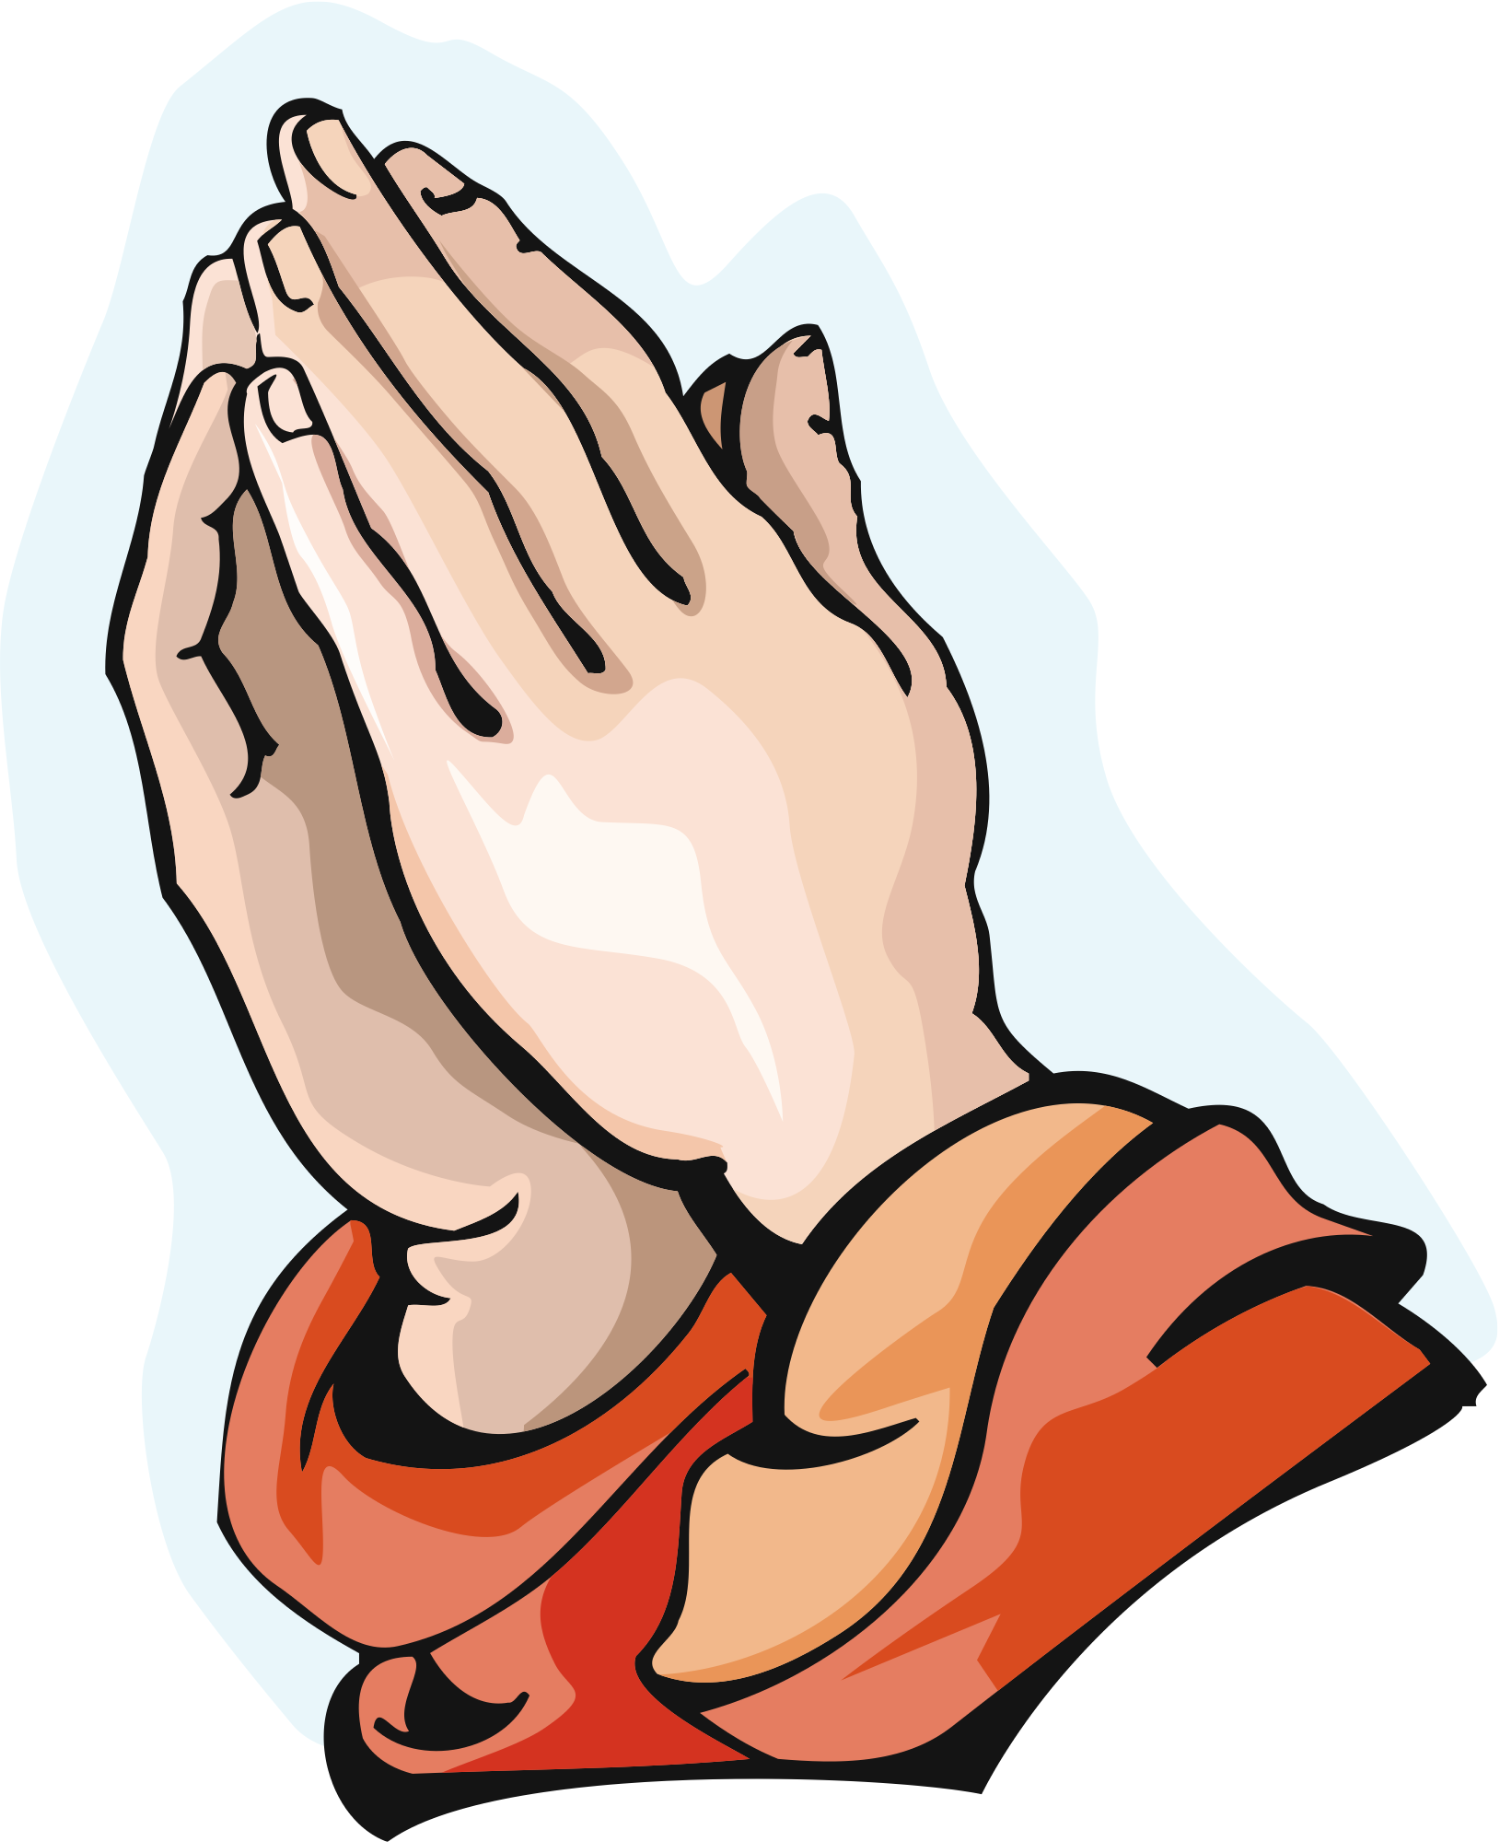 Praying Hands PNG HD Images - 136241